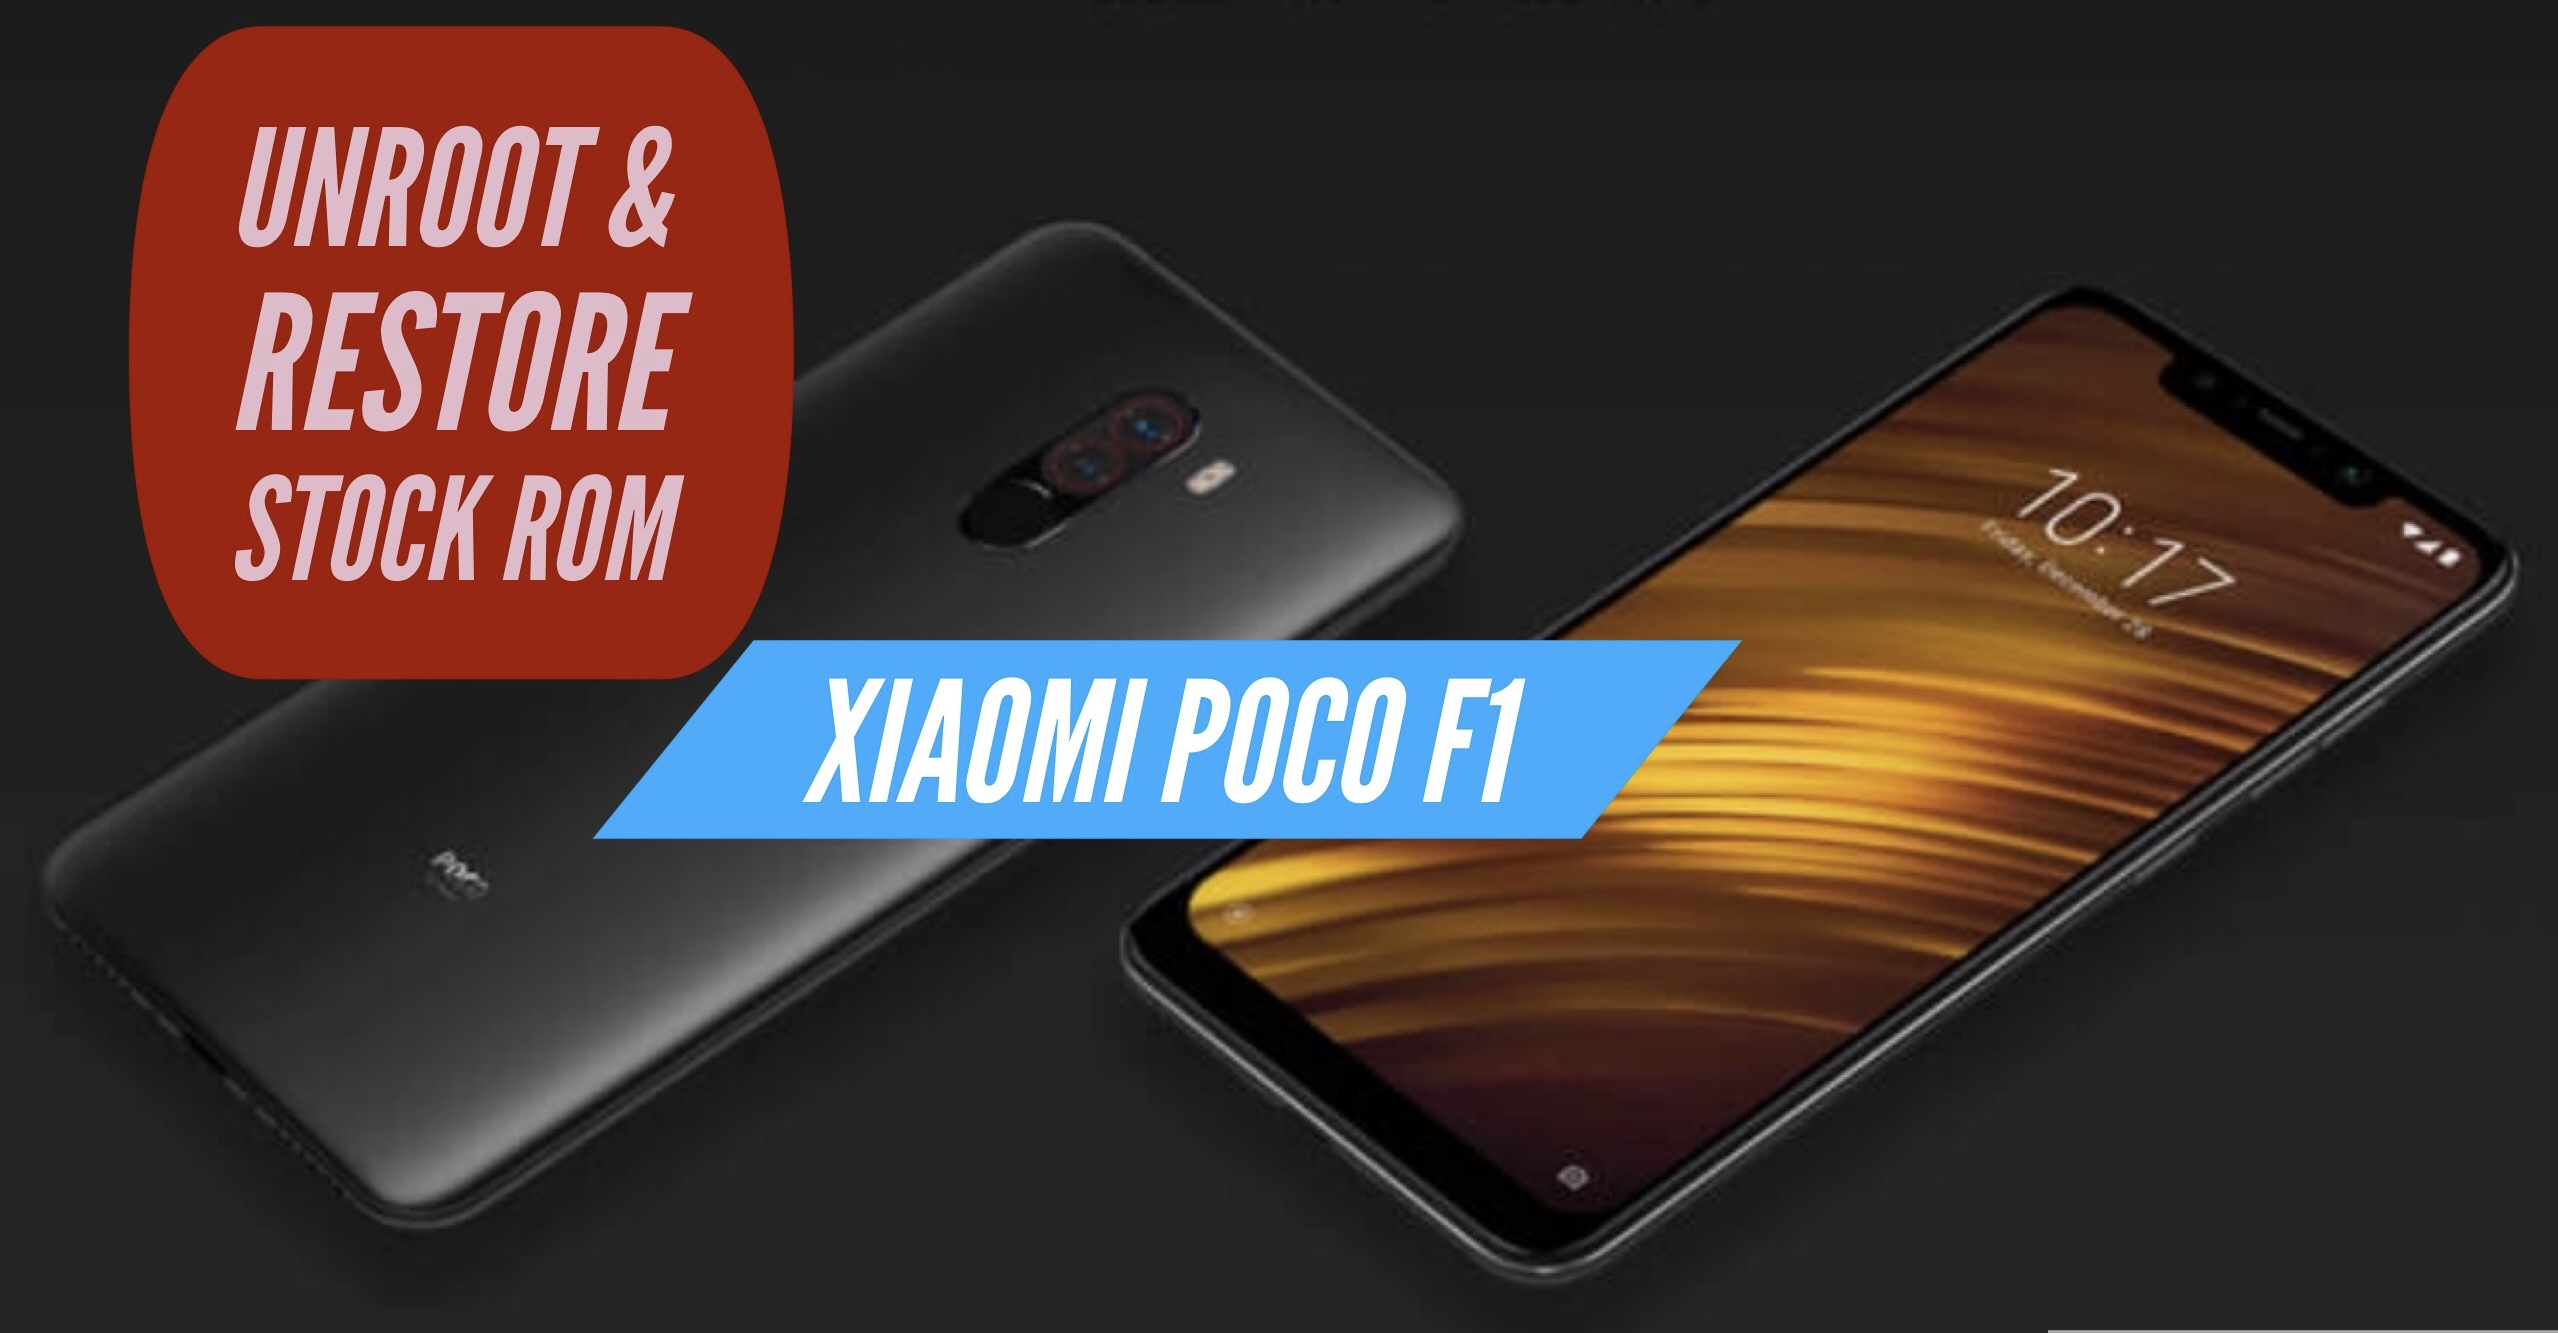 How to Unroot Xiaomi Poco F1 & Restore Stock ROM? INSTALL!